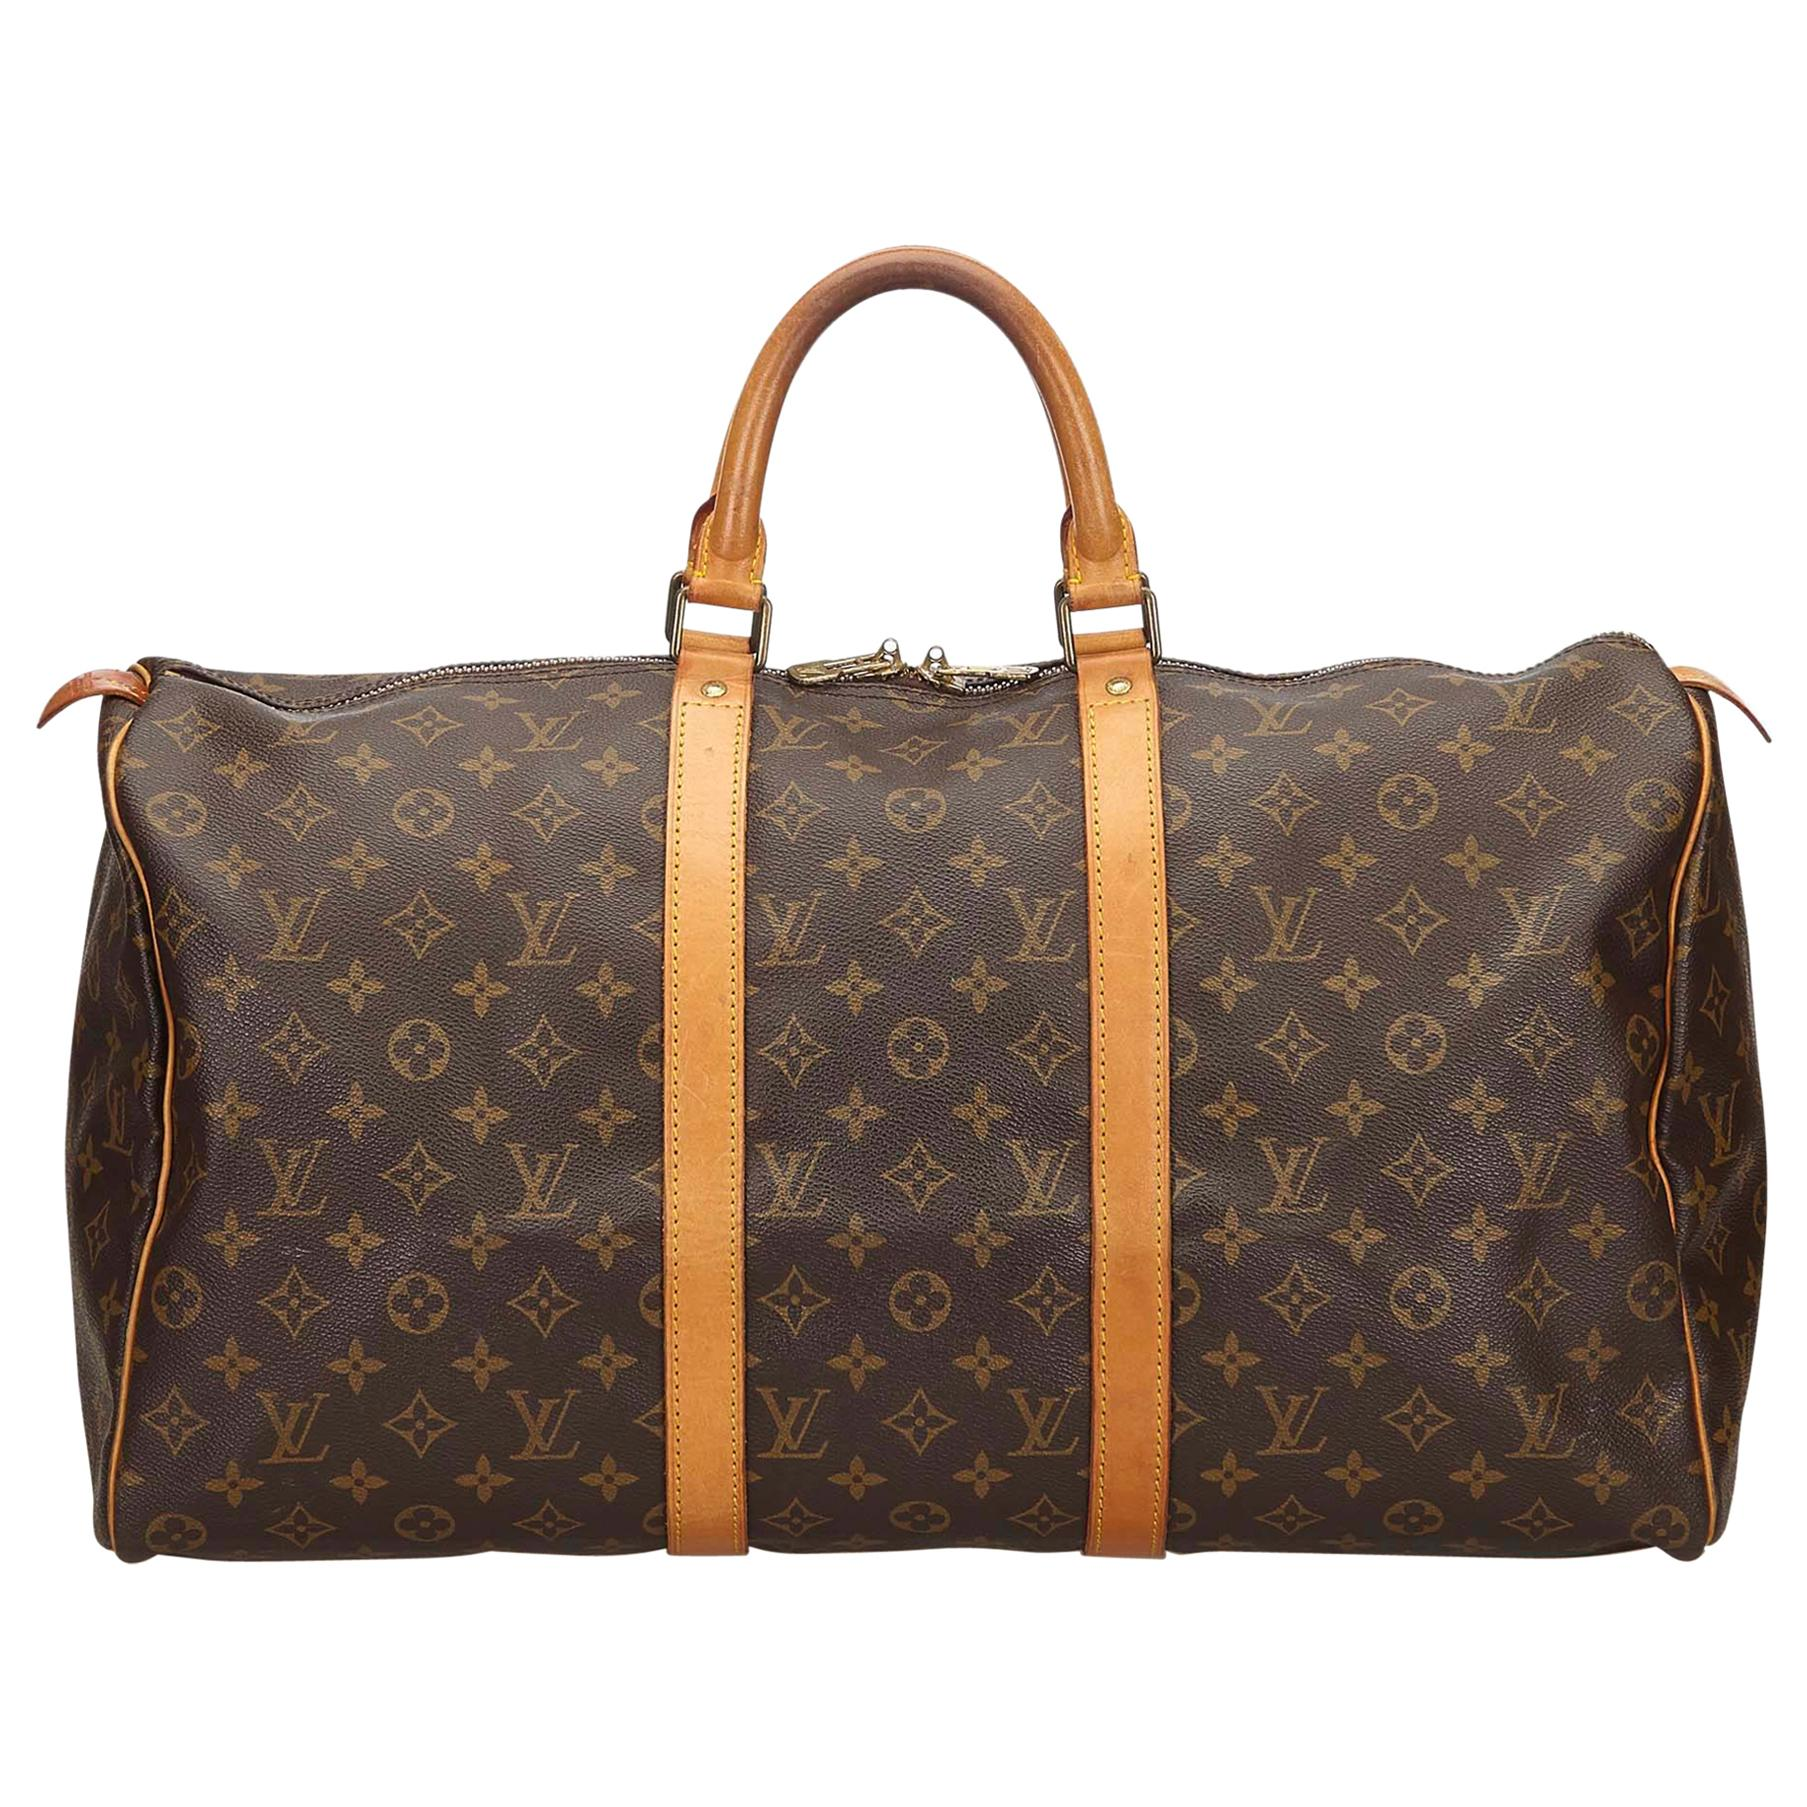 0a6f6b0ac7fc Designer Bags Under $1000 - 9754 For Sale on 1stdibs